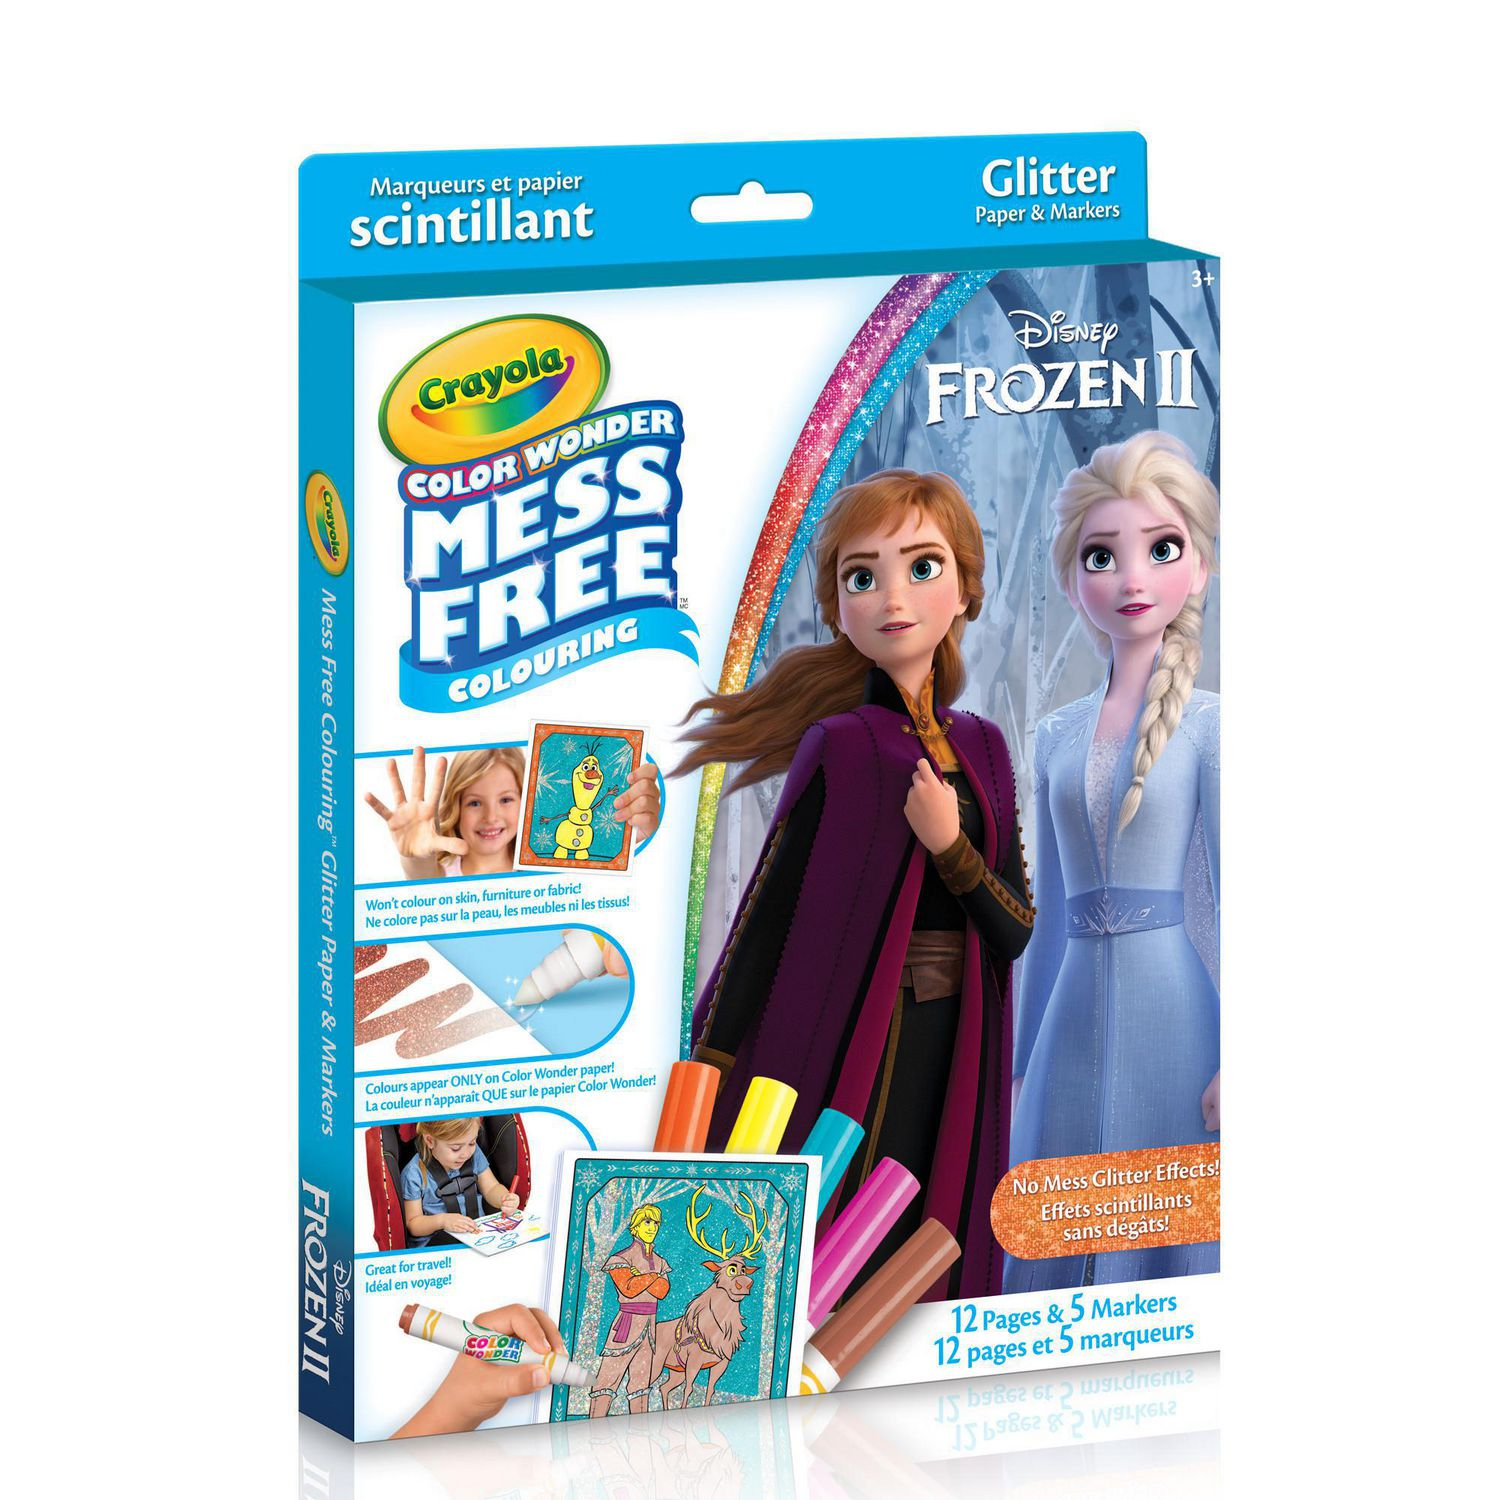 Crayola Color Wonder Glitter Paper Kit - Disney Frozen | Walmart Canada